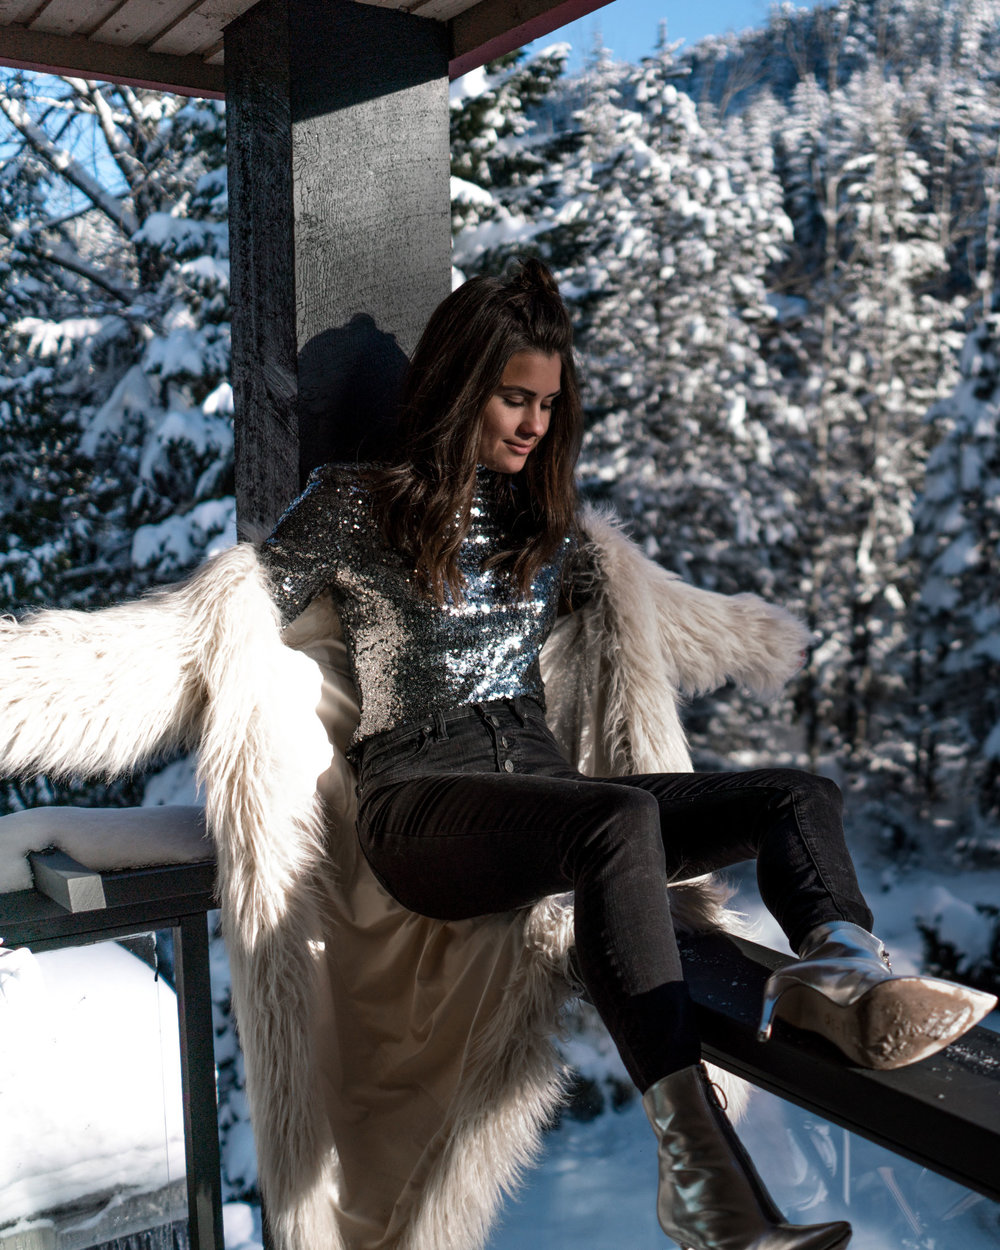 new years eve snow sequin fur outfit whistler4.jpg